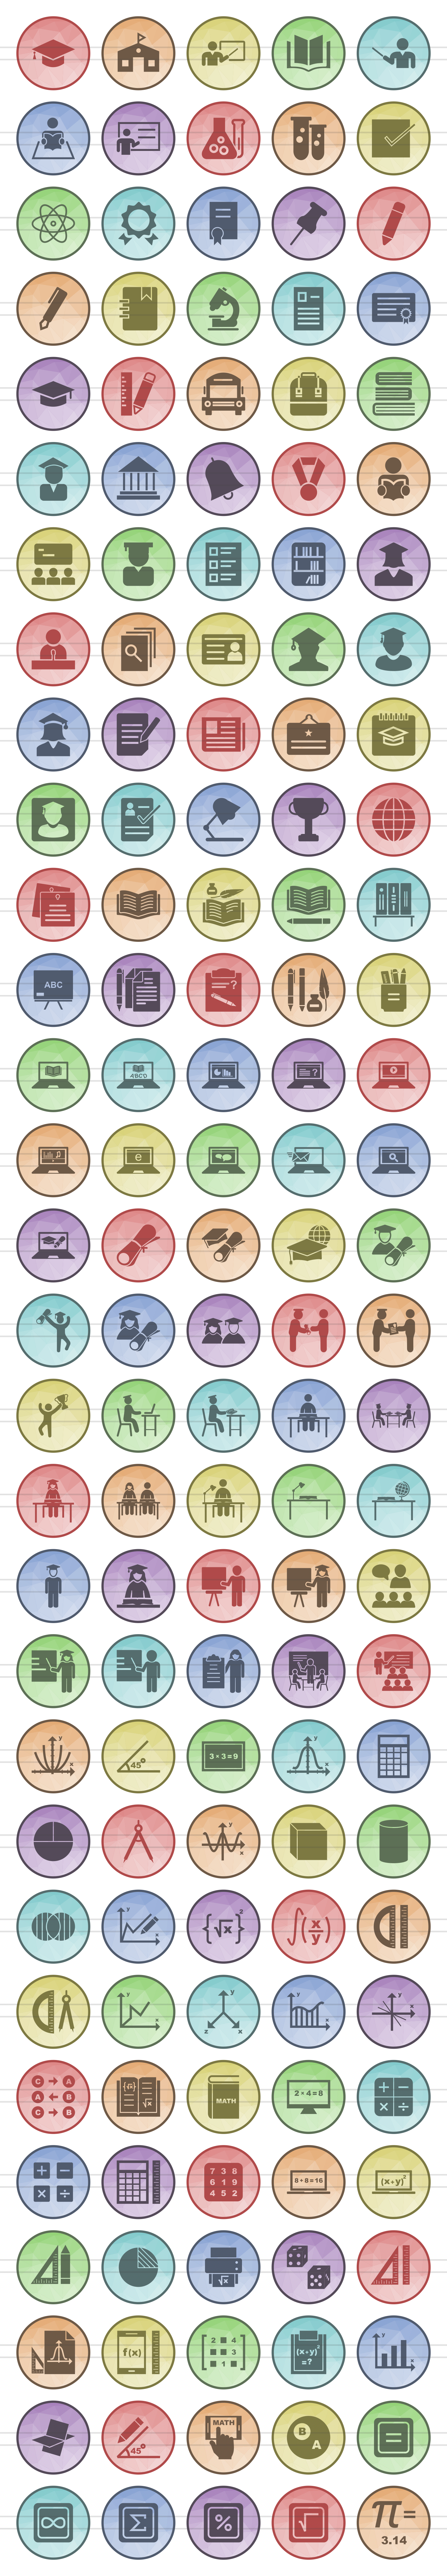 150 Academics Filled Low Poly Icons example image 2